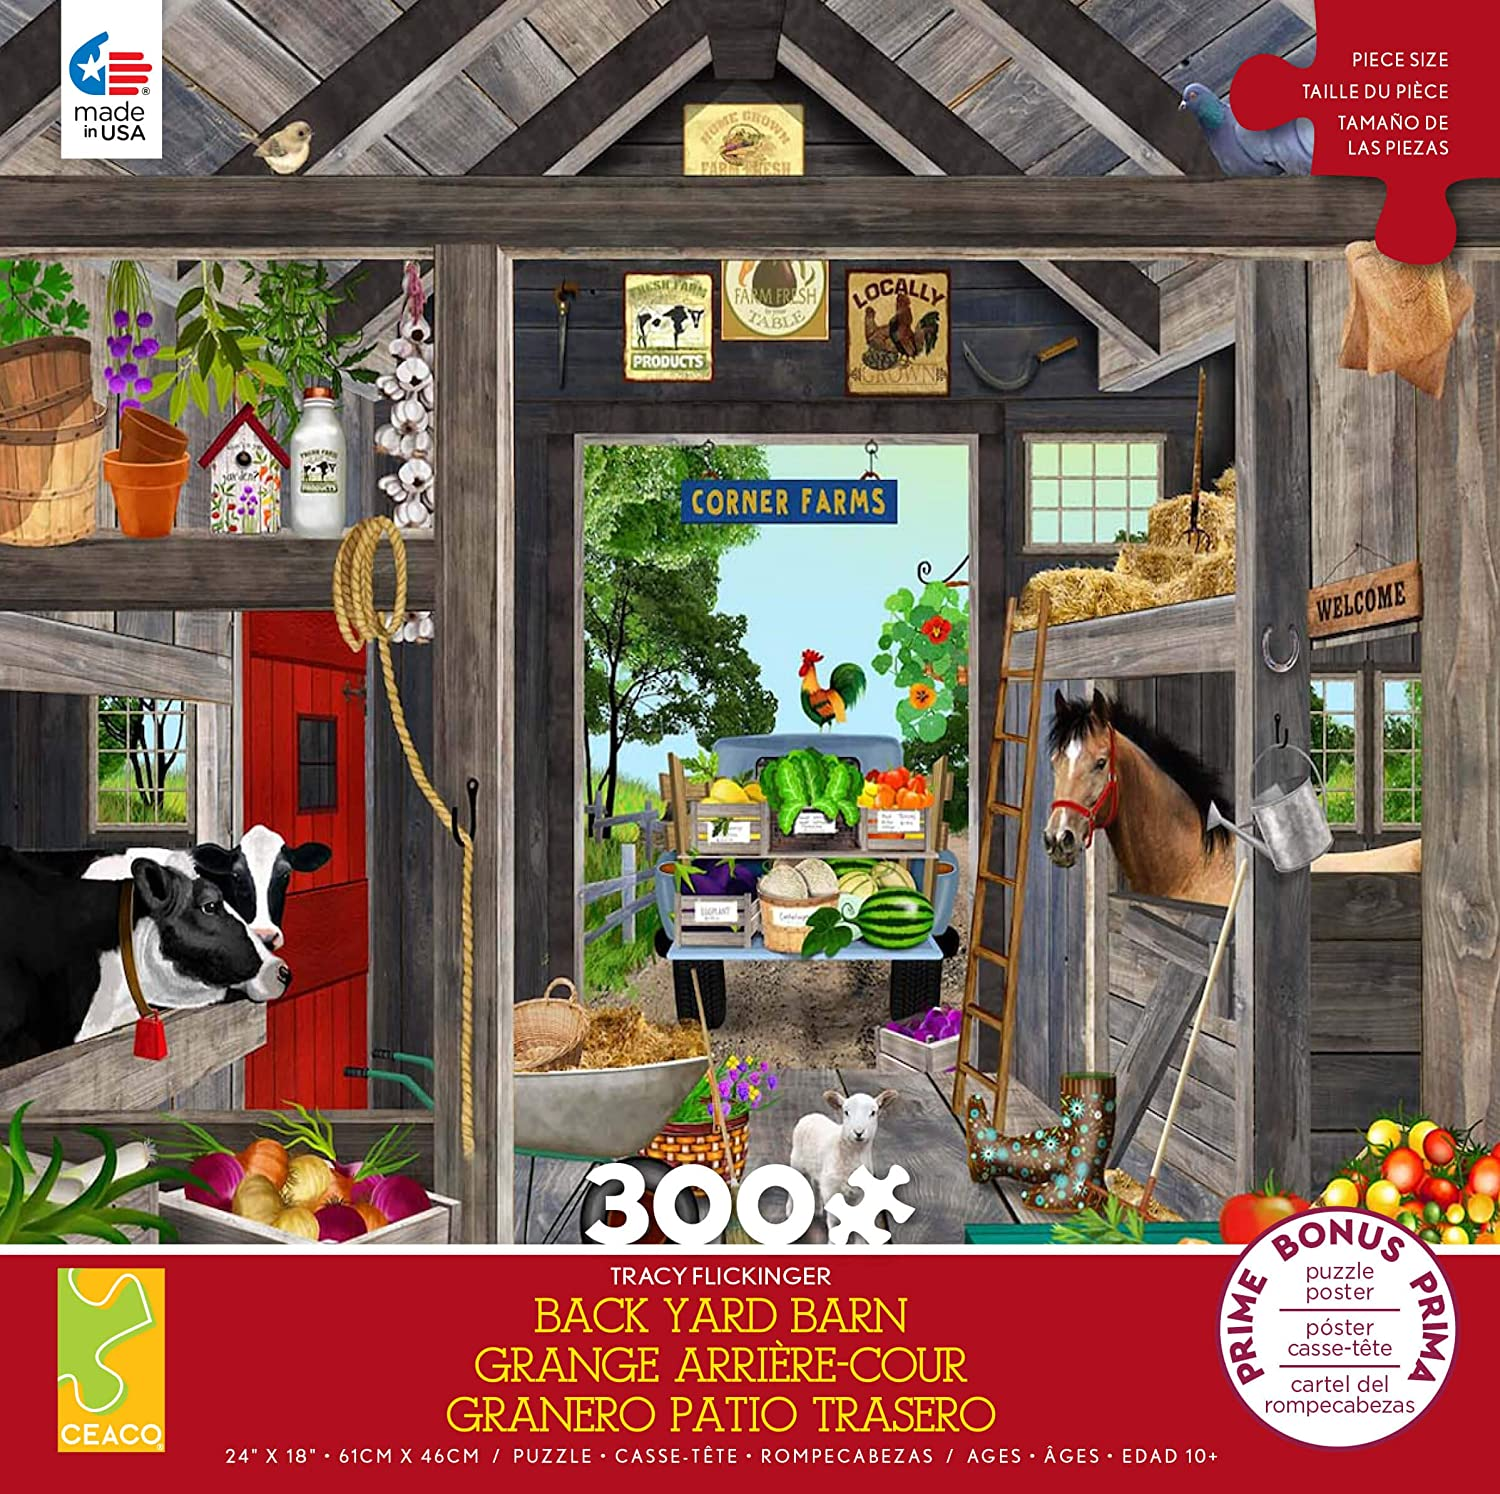 Tracy Flickinger - The Barn 300 Piece Puzzle - Ceaco